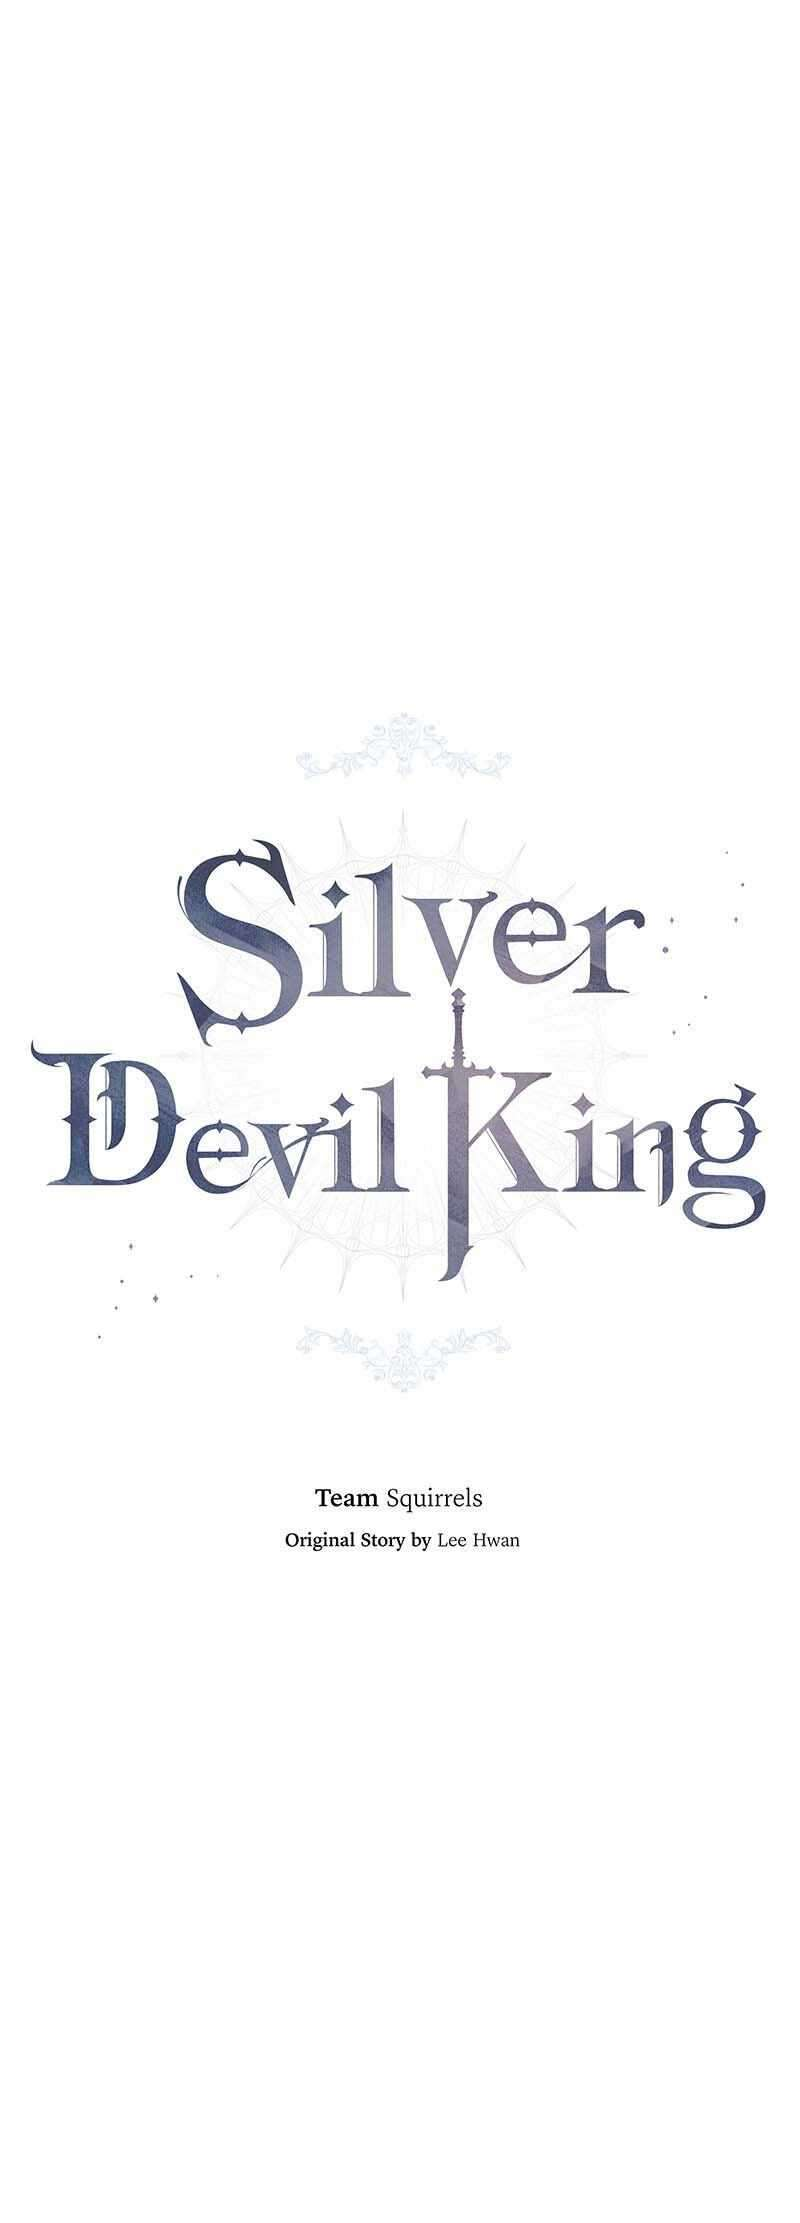 Silver Demon King Chapter 25